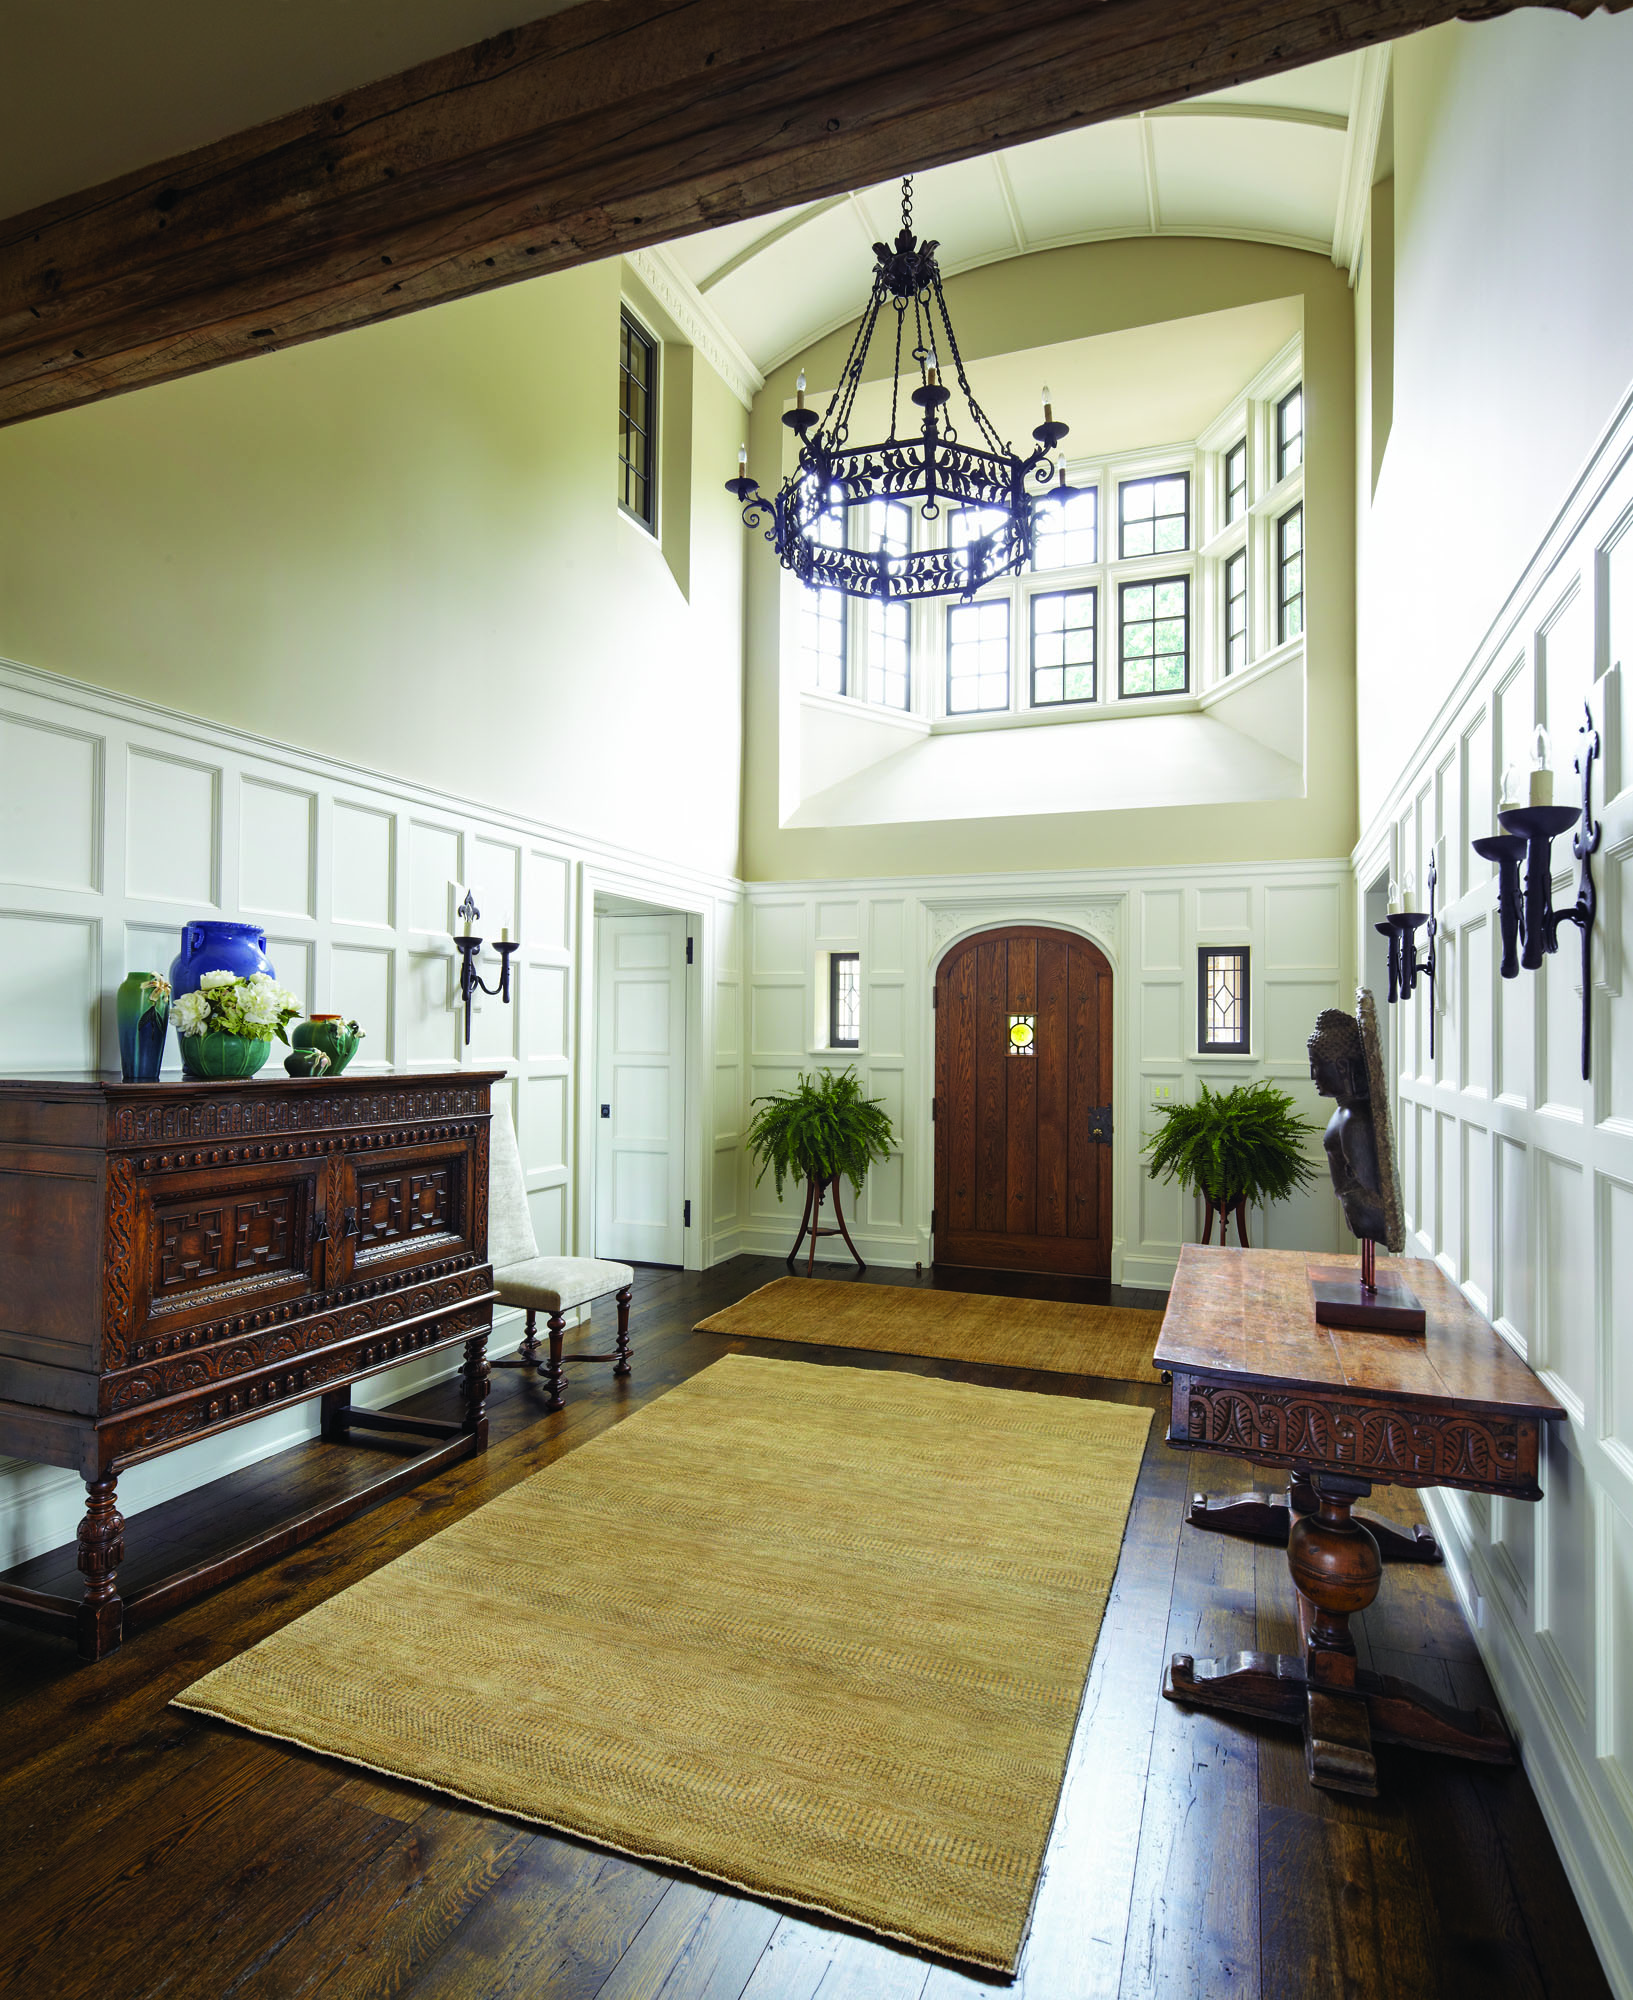 Entry hall features a high wood wainscot.